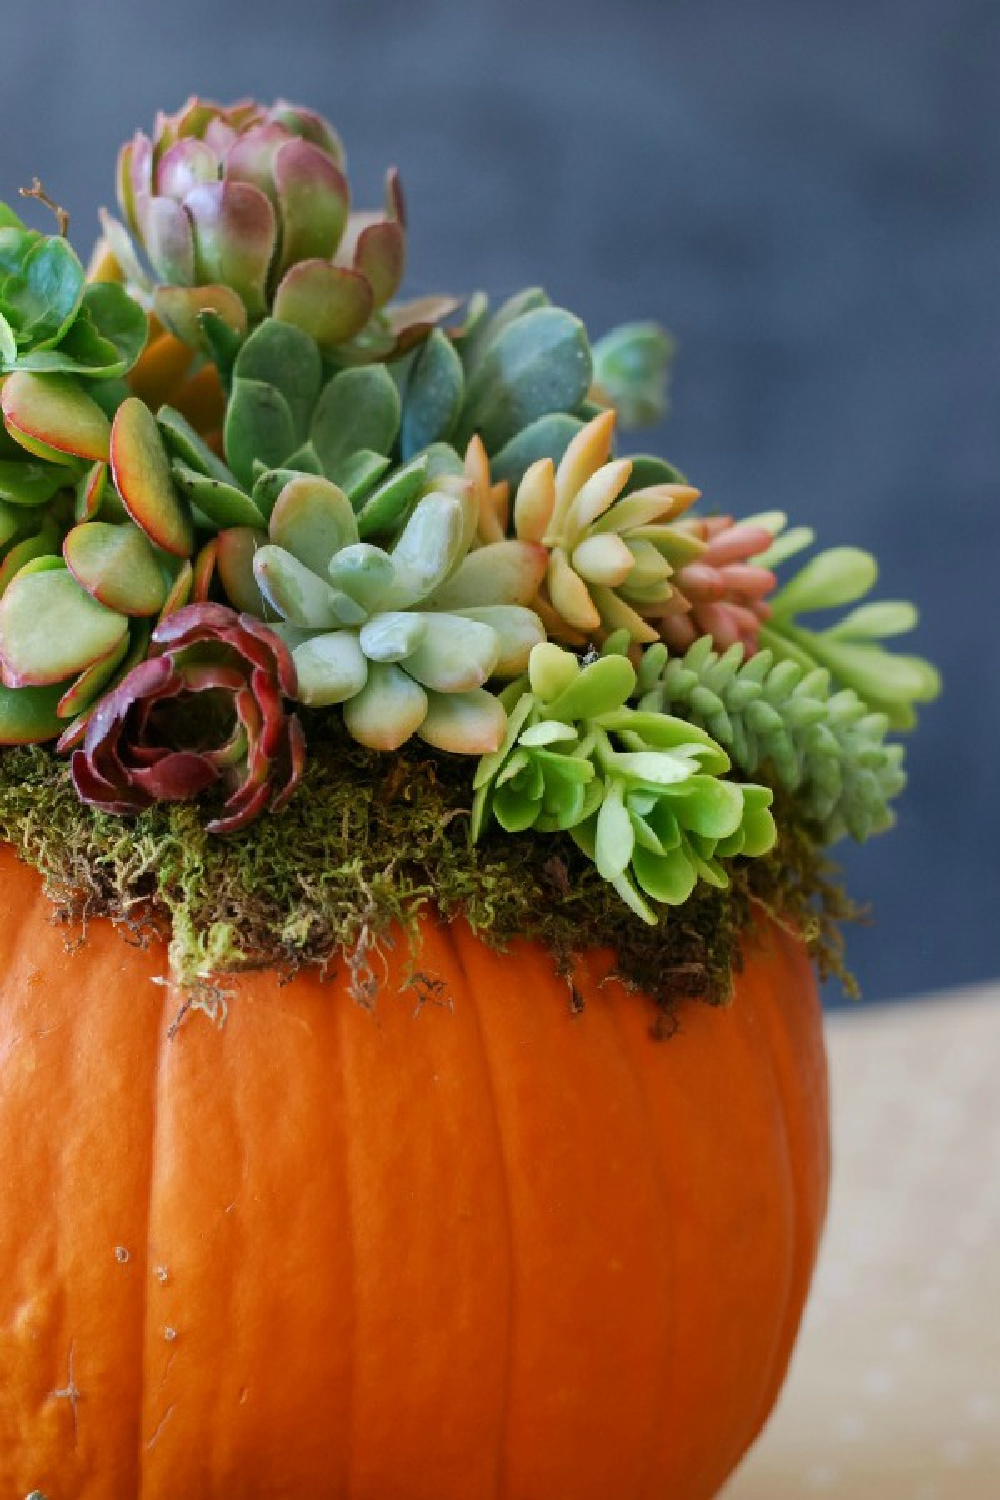 Vibrant colorful fall centerpiece for Thanksgiving or everyday! Succulents in a bright orange pumpkin - Simply Happenstance. #falltable #tablescape #centerpiece #tabletop #florals #autumn #pumpkins